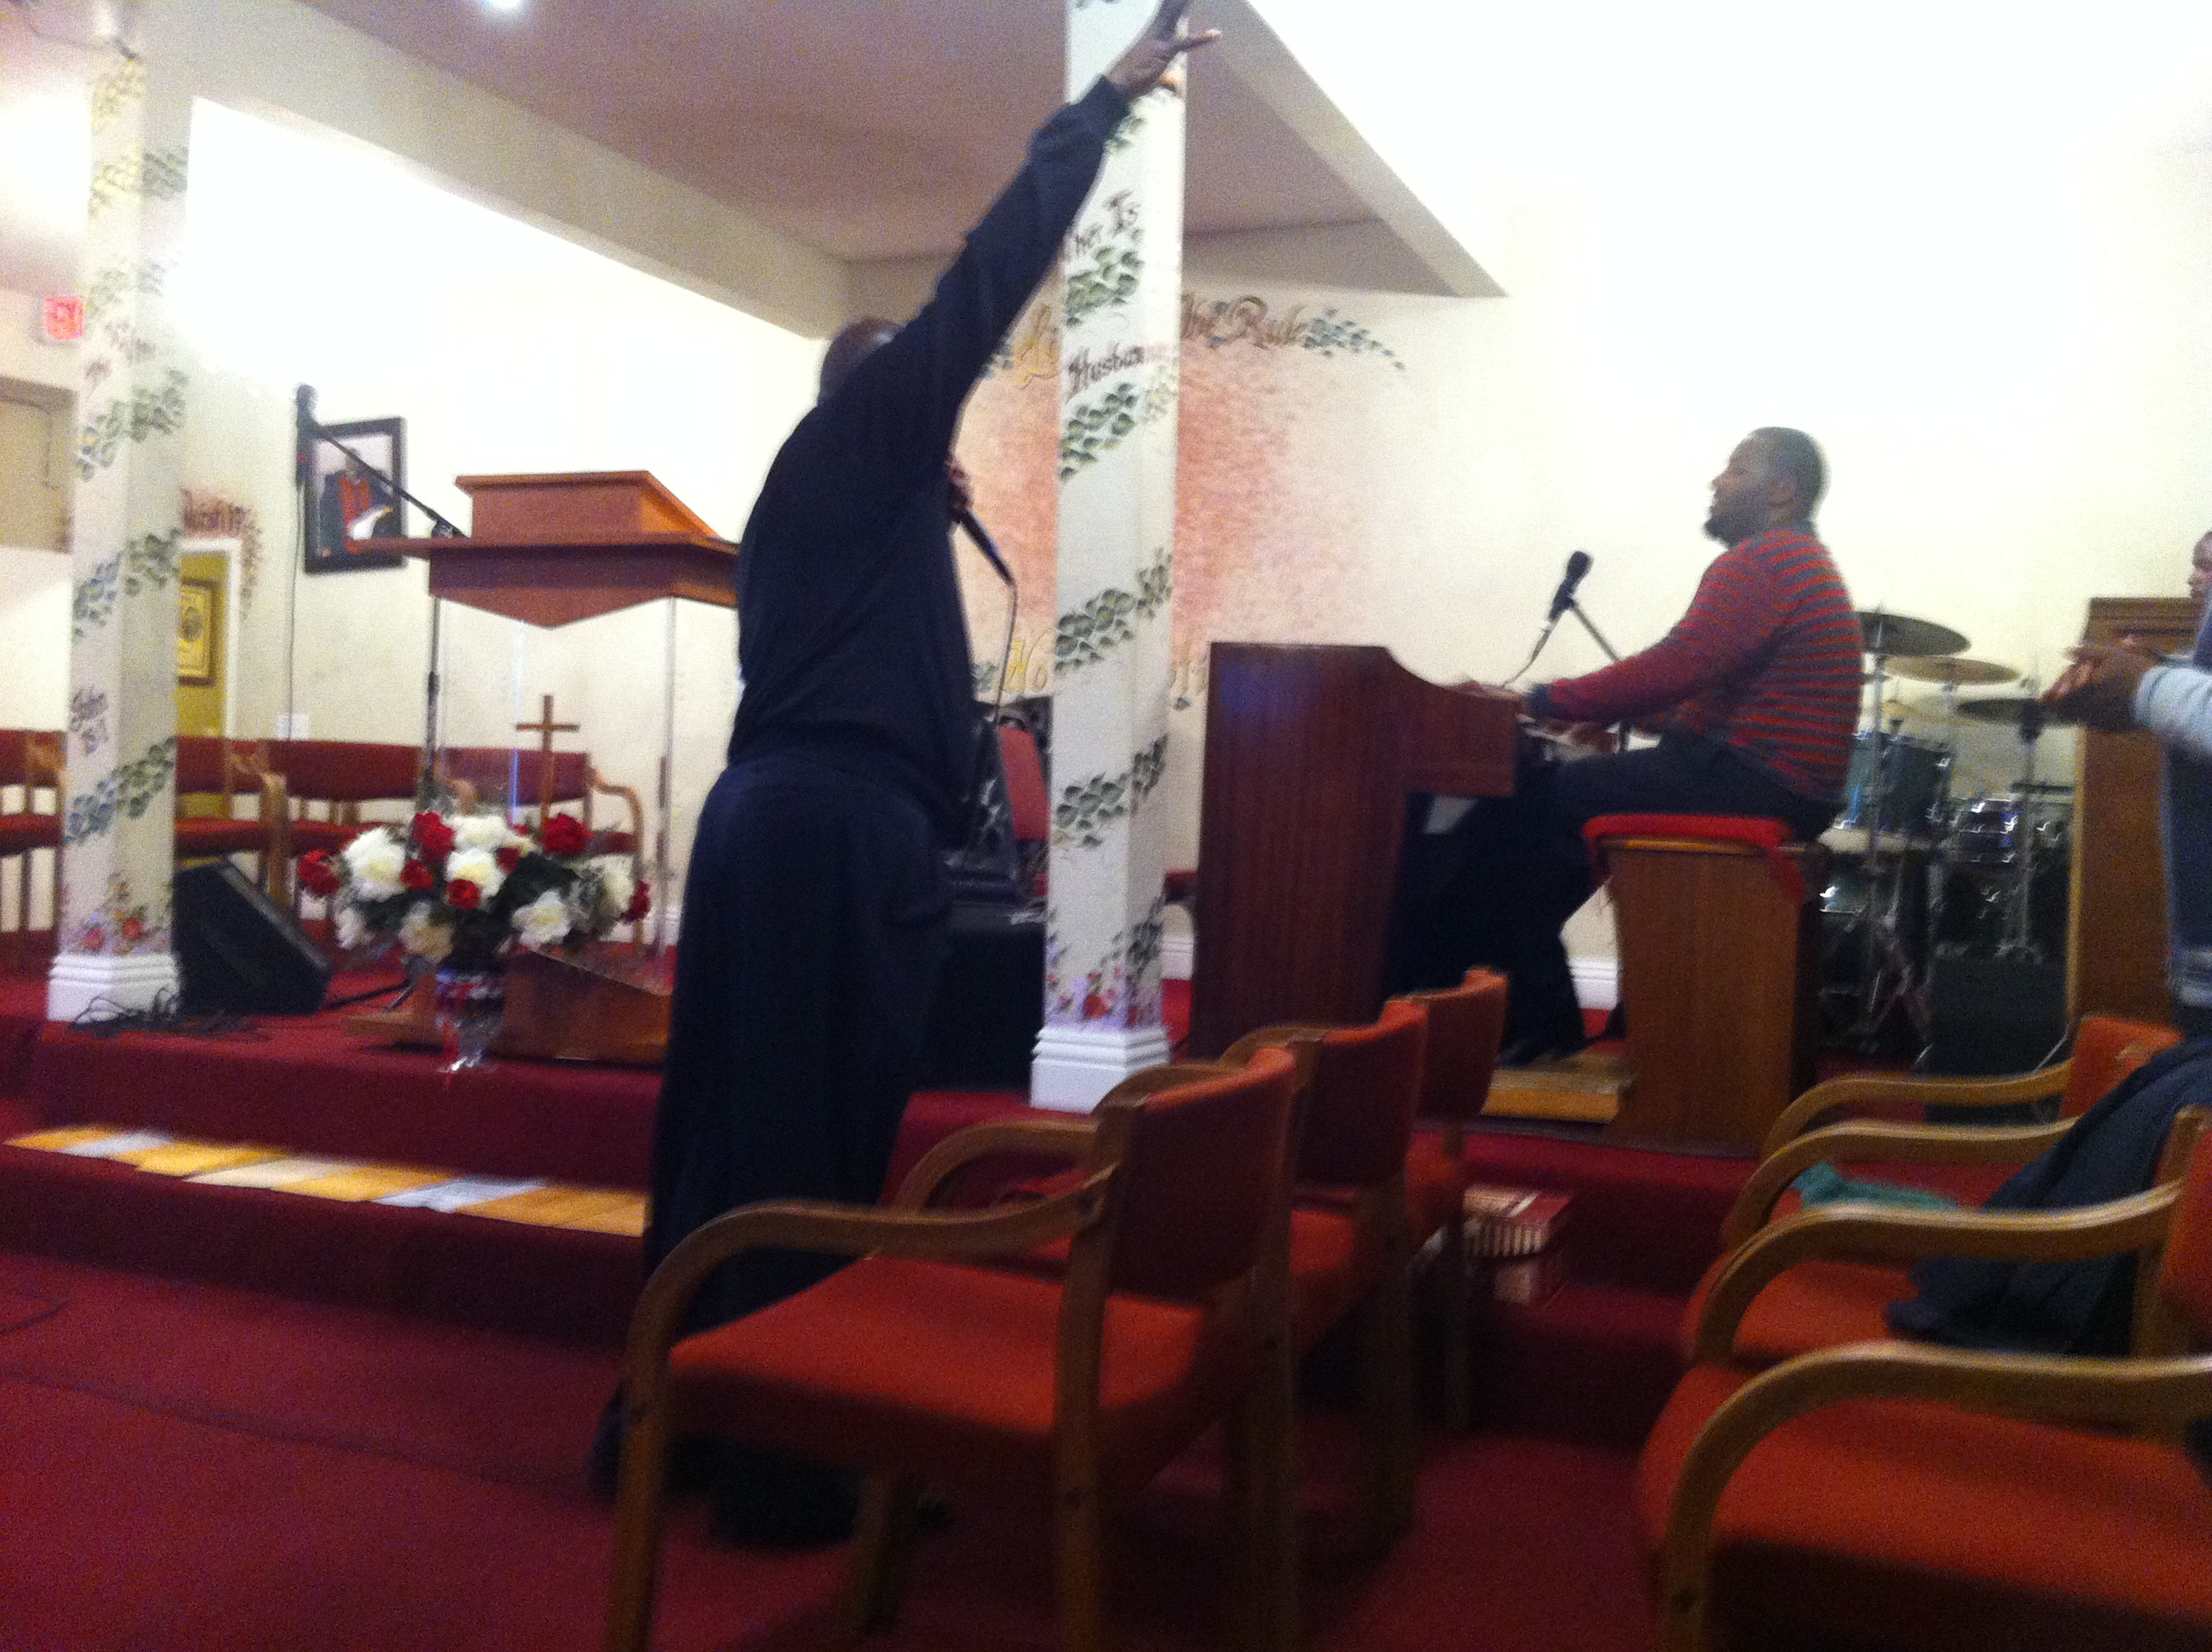 The pastor and organist playing off each other during the Praise and Worship part of the meeting.